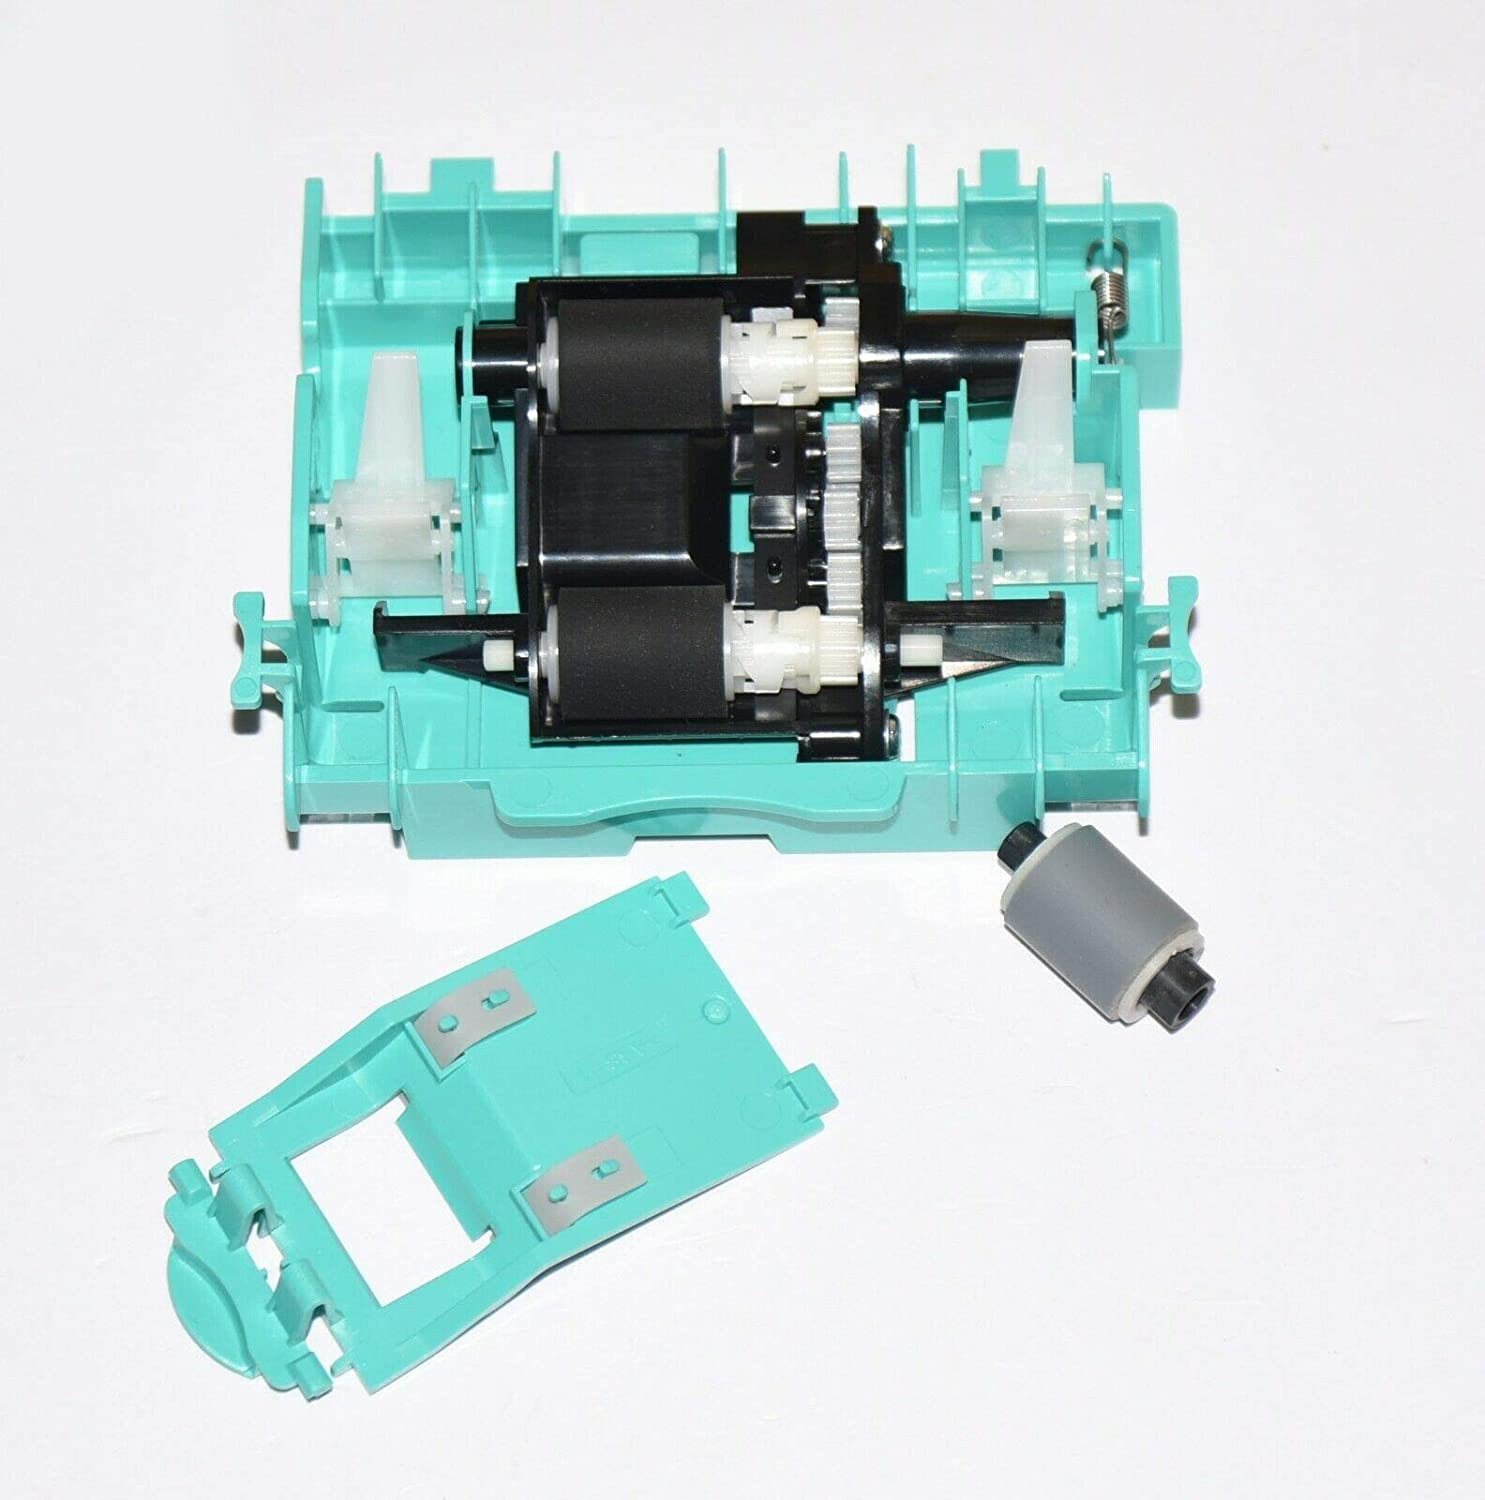 New L2747 L2748A for HP ScanJet Pro 2500 F1 Scanner ADF Roller Replacement Kit Maintanance Roller